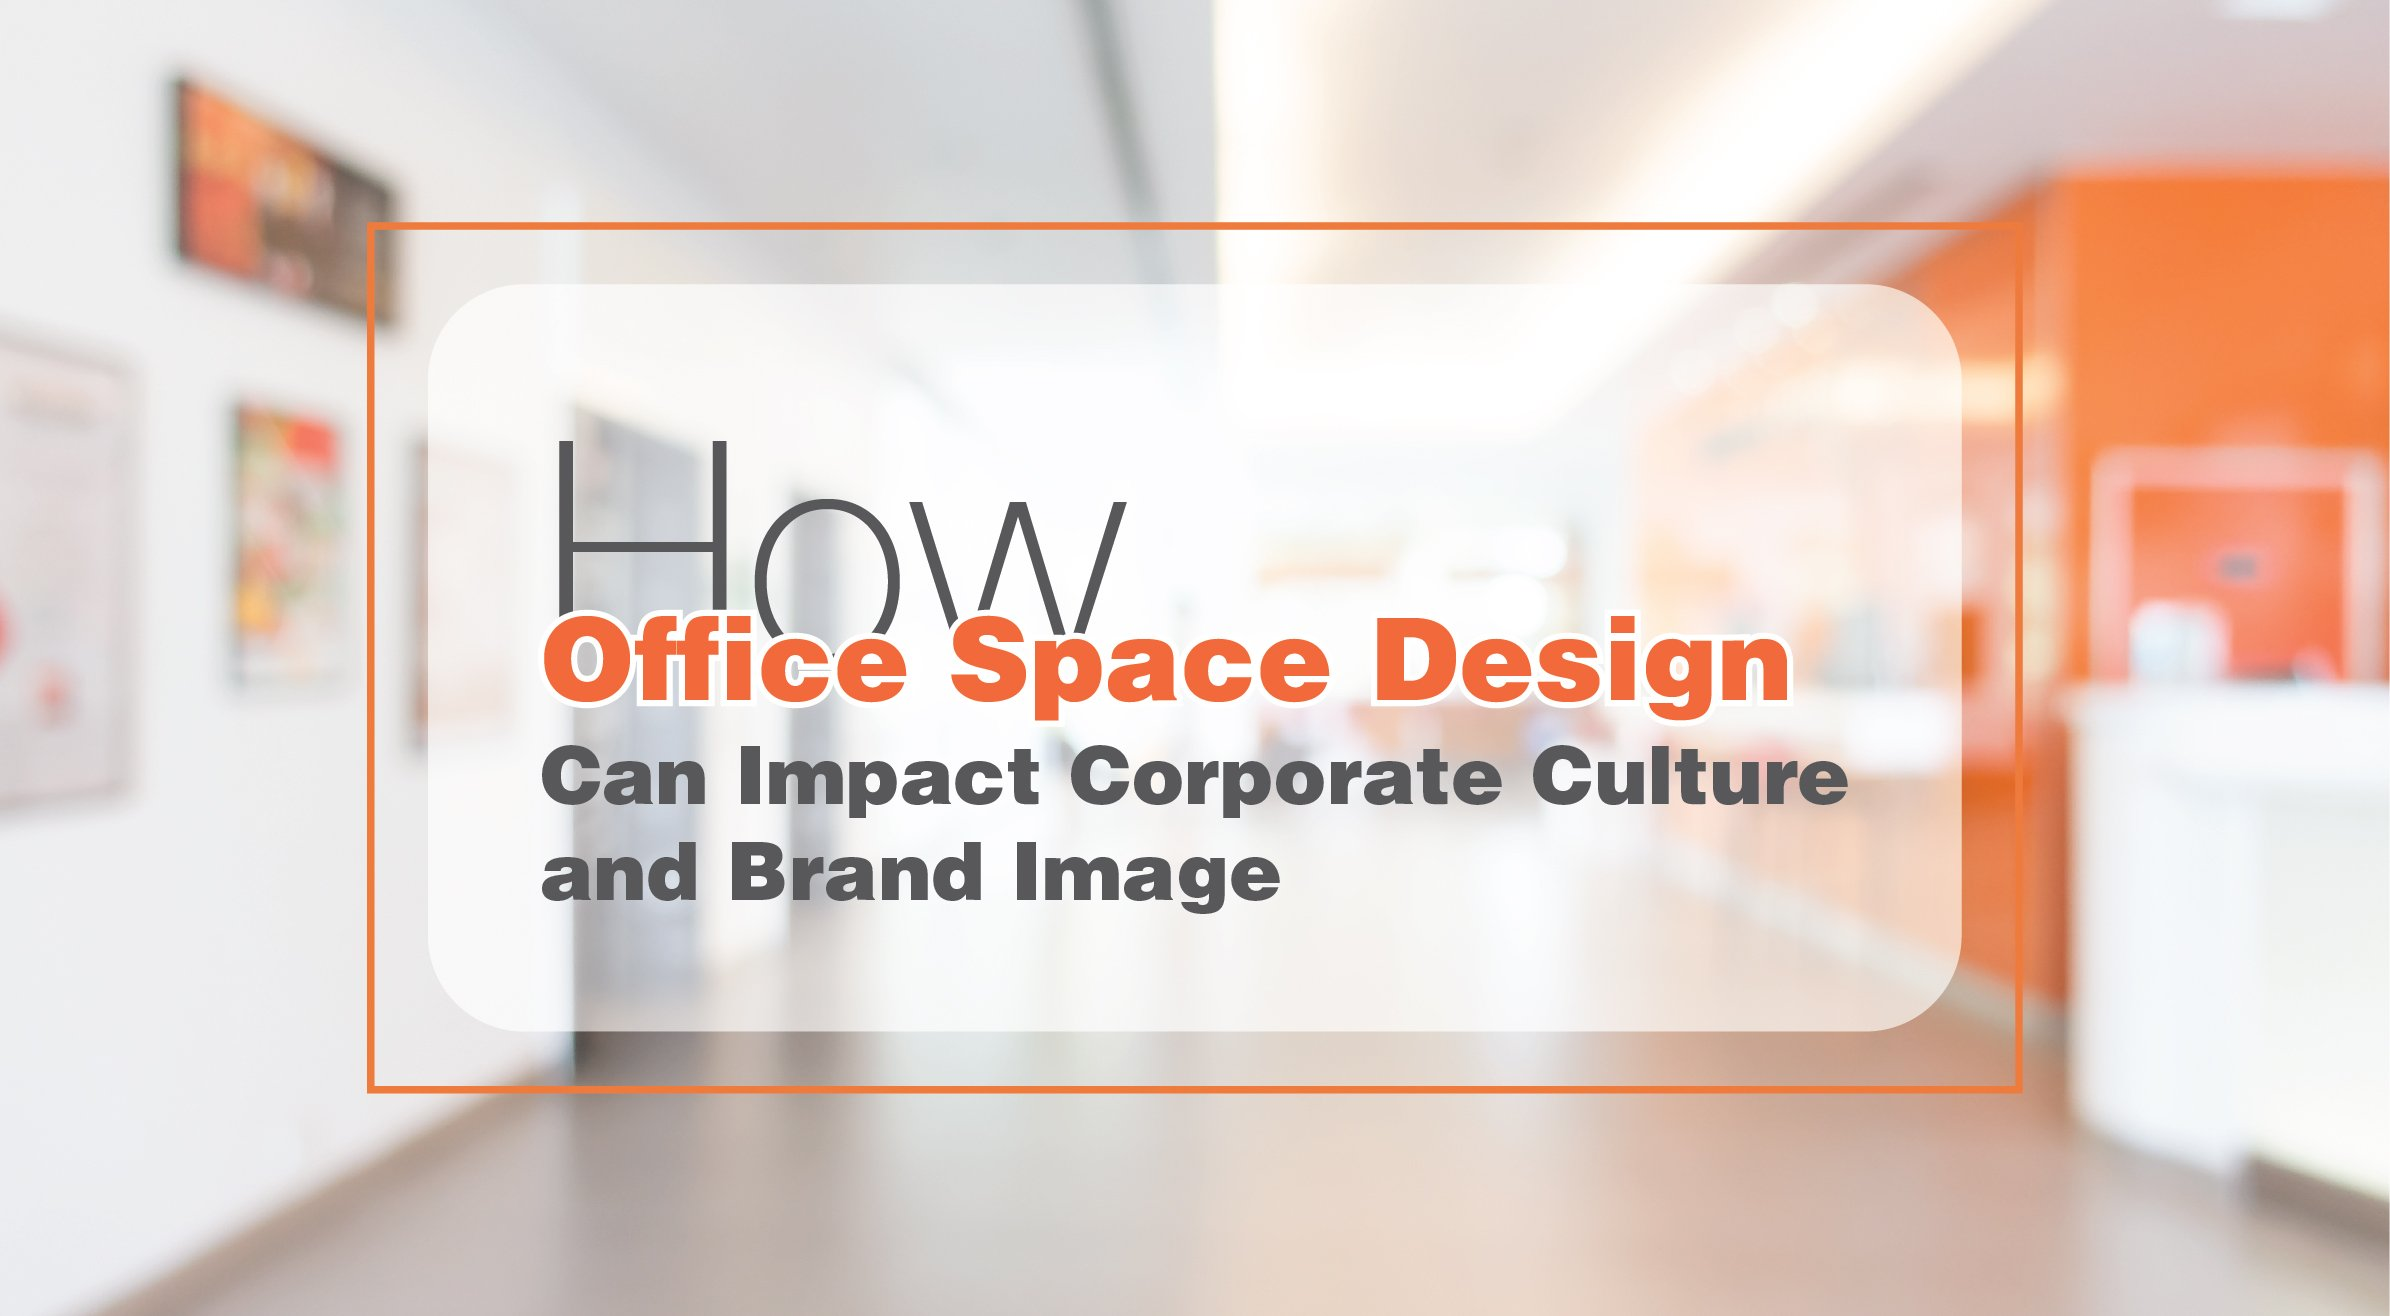 How Office Space Design Can Impact Corporate Culture And Brand Image